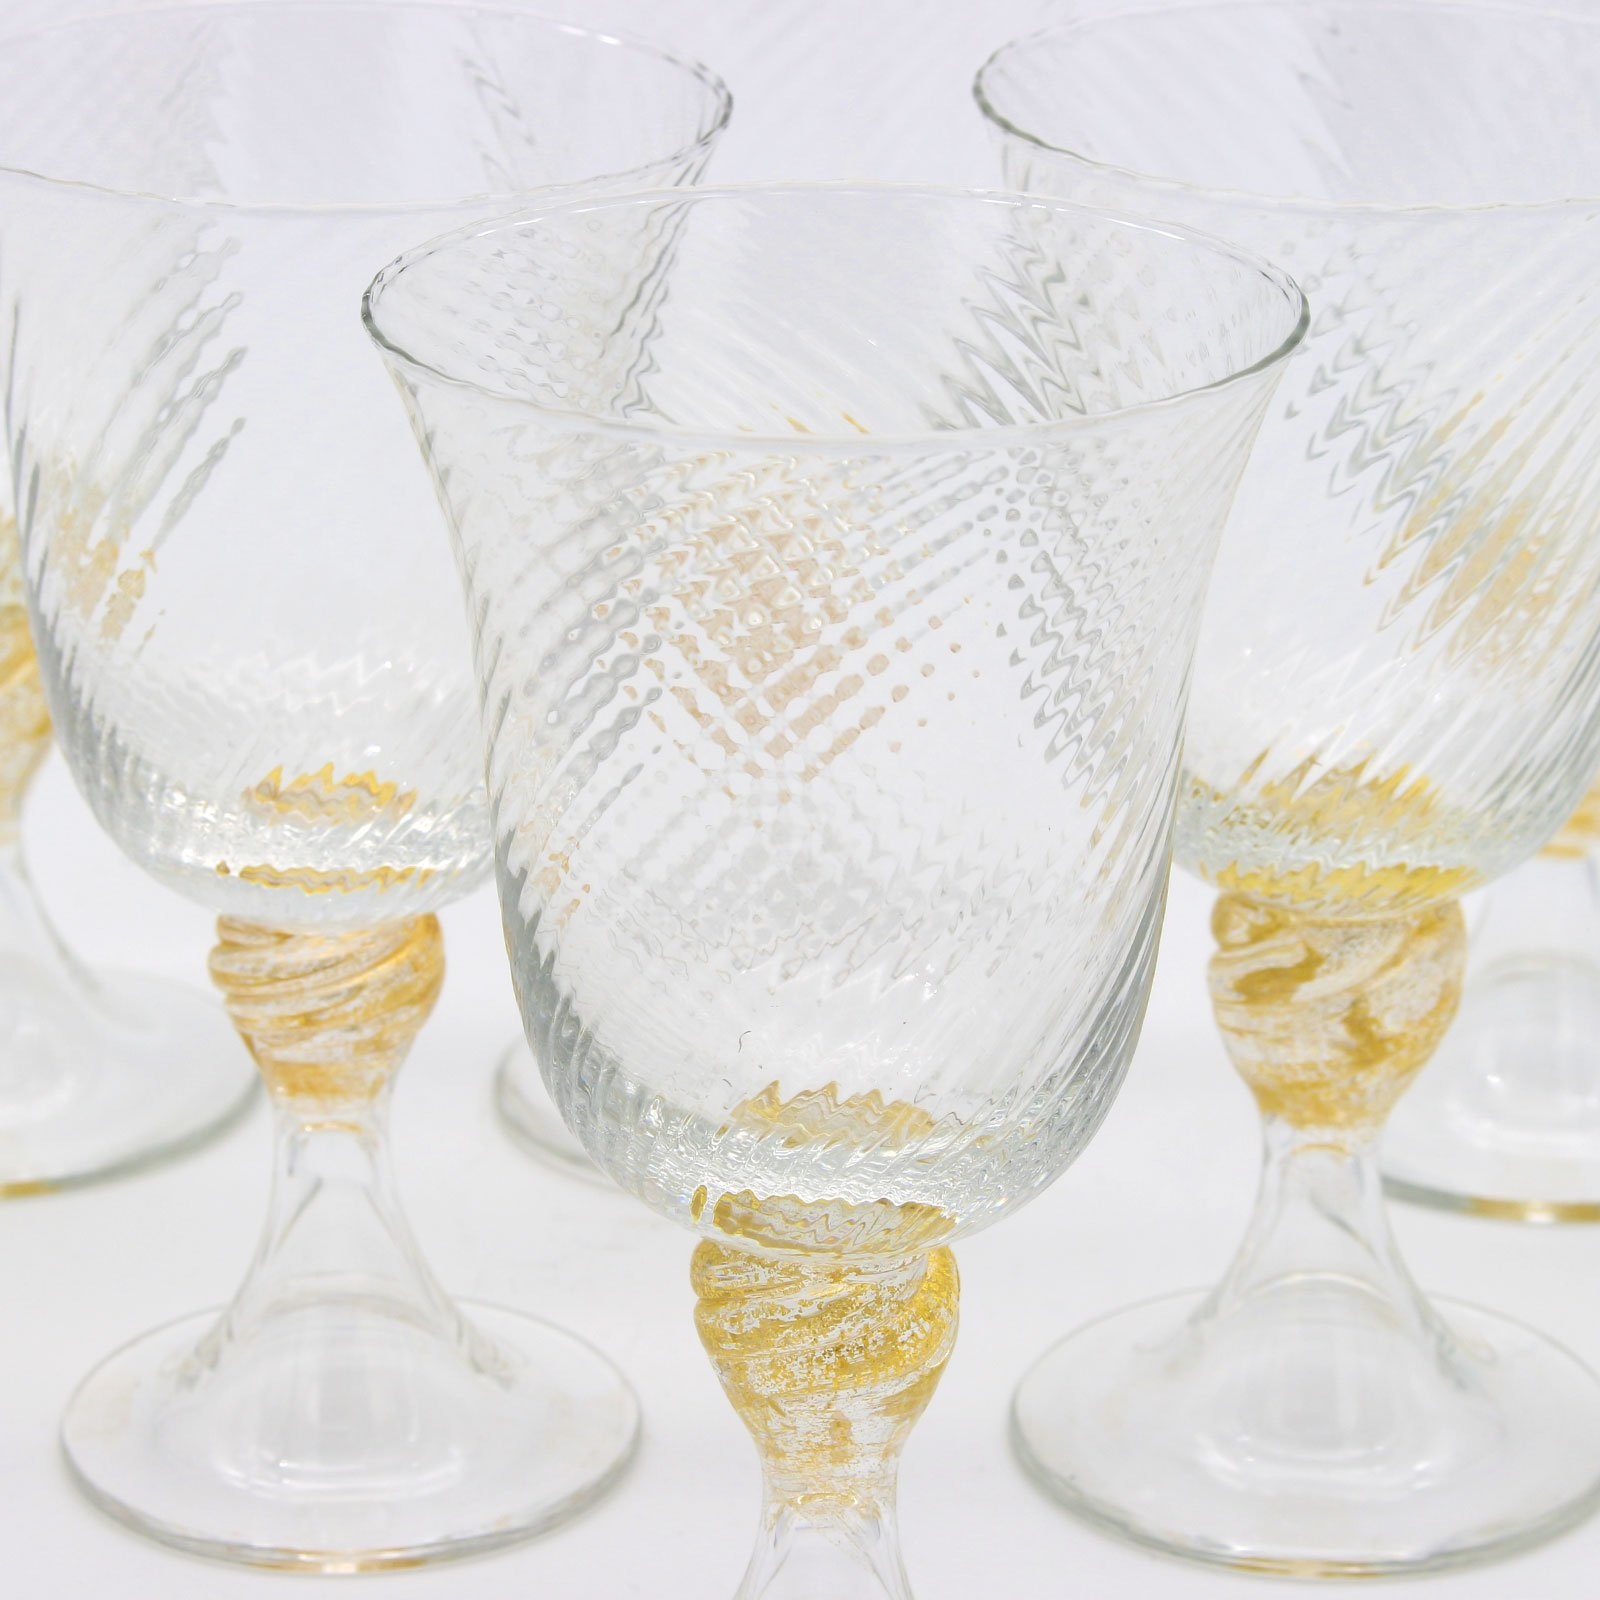 Torcée Water Drinking glasses - Set of 6 pieces